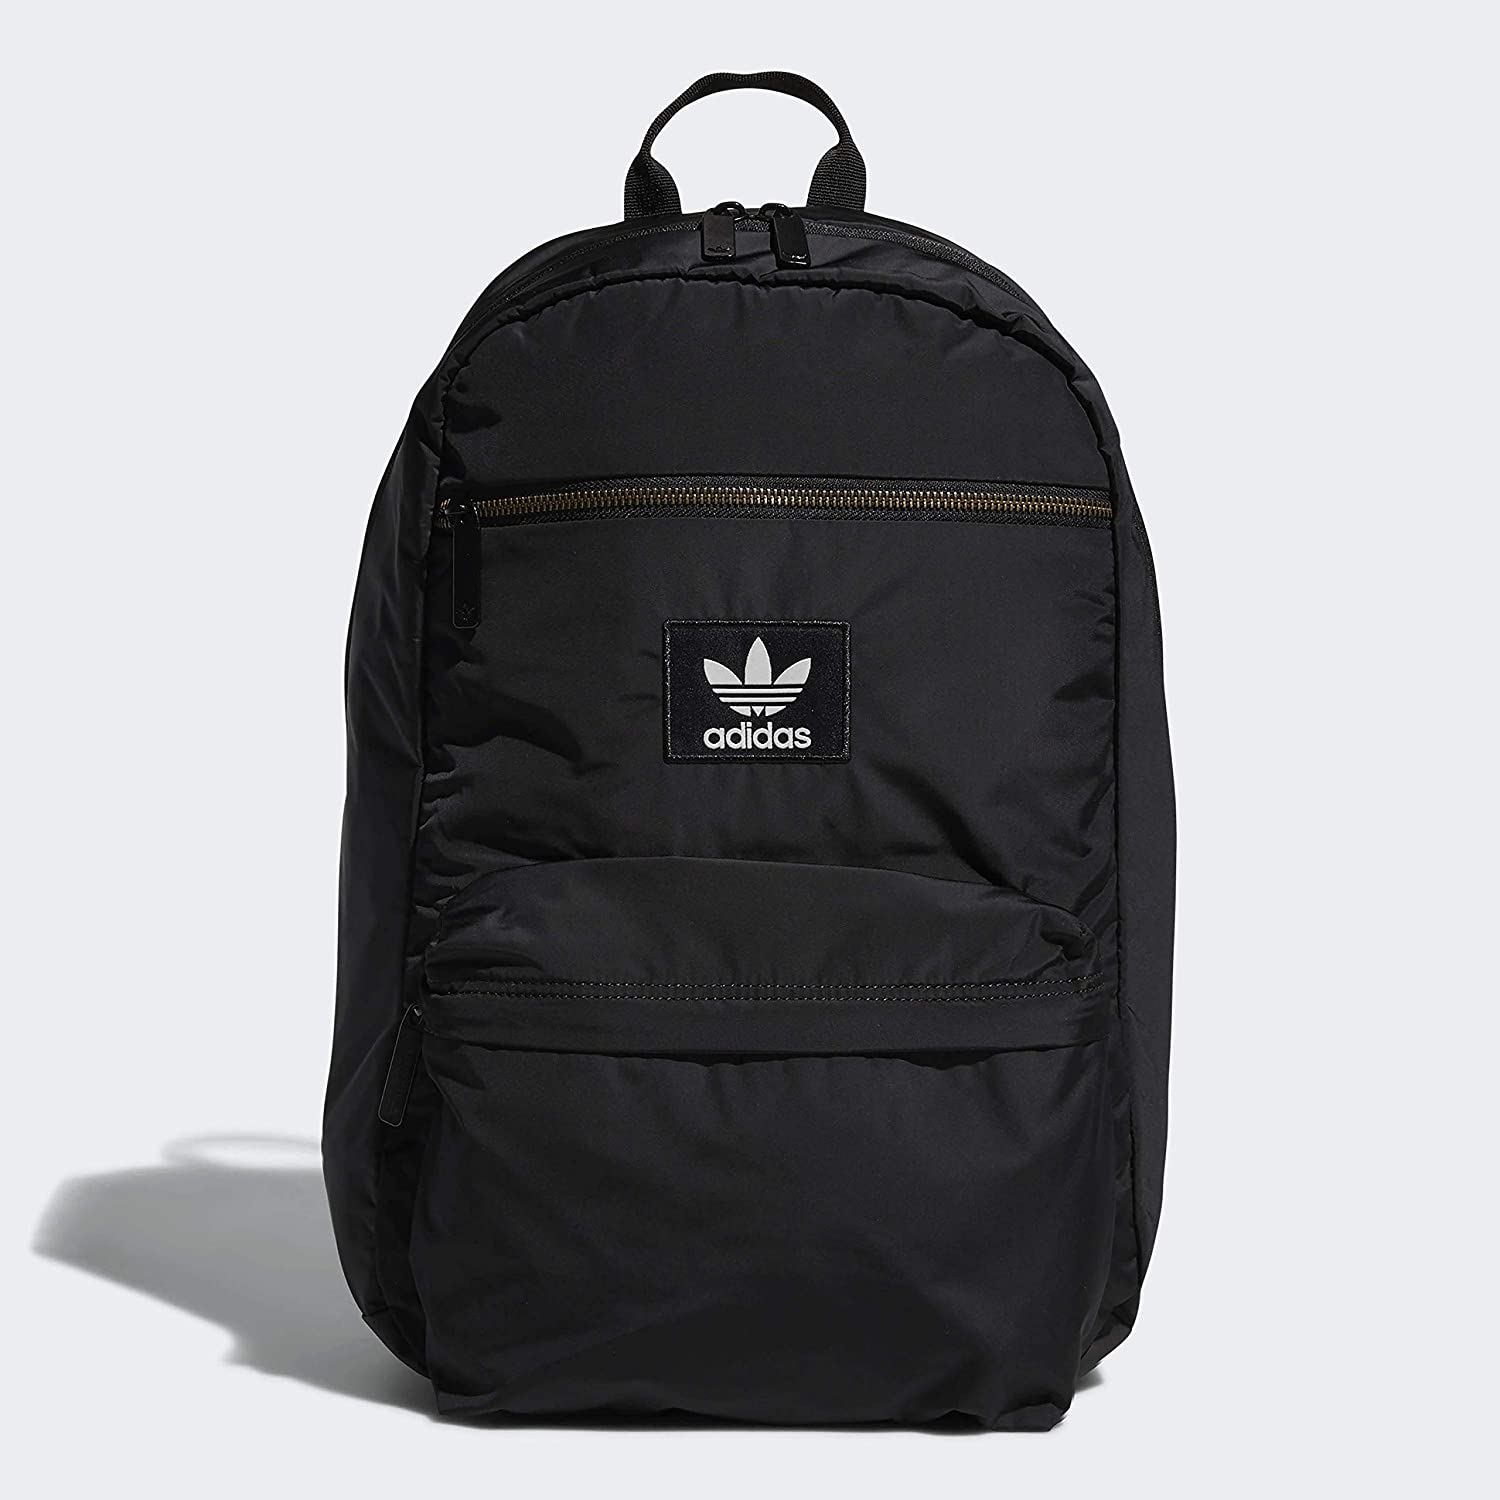 adidas Originals National Plus Backpack Backpack